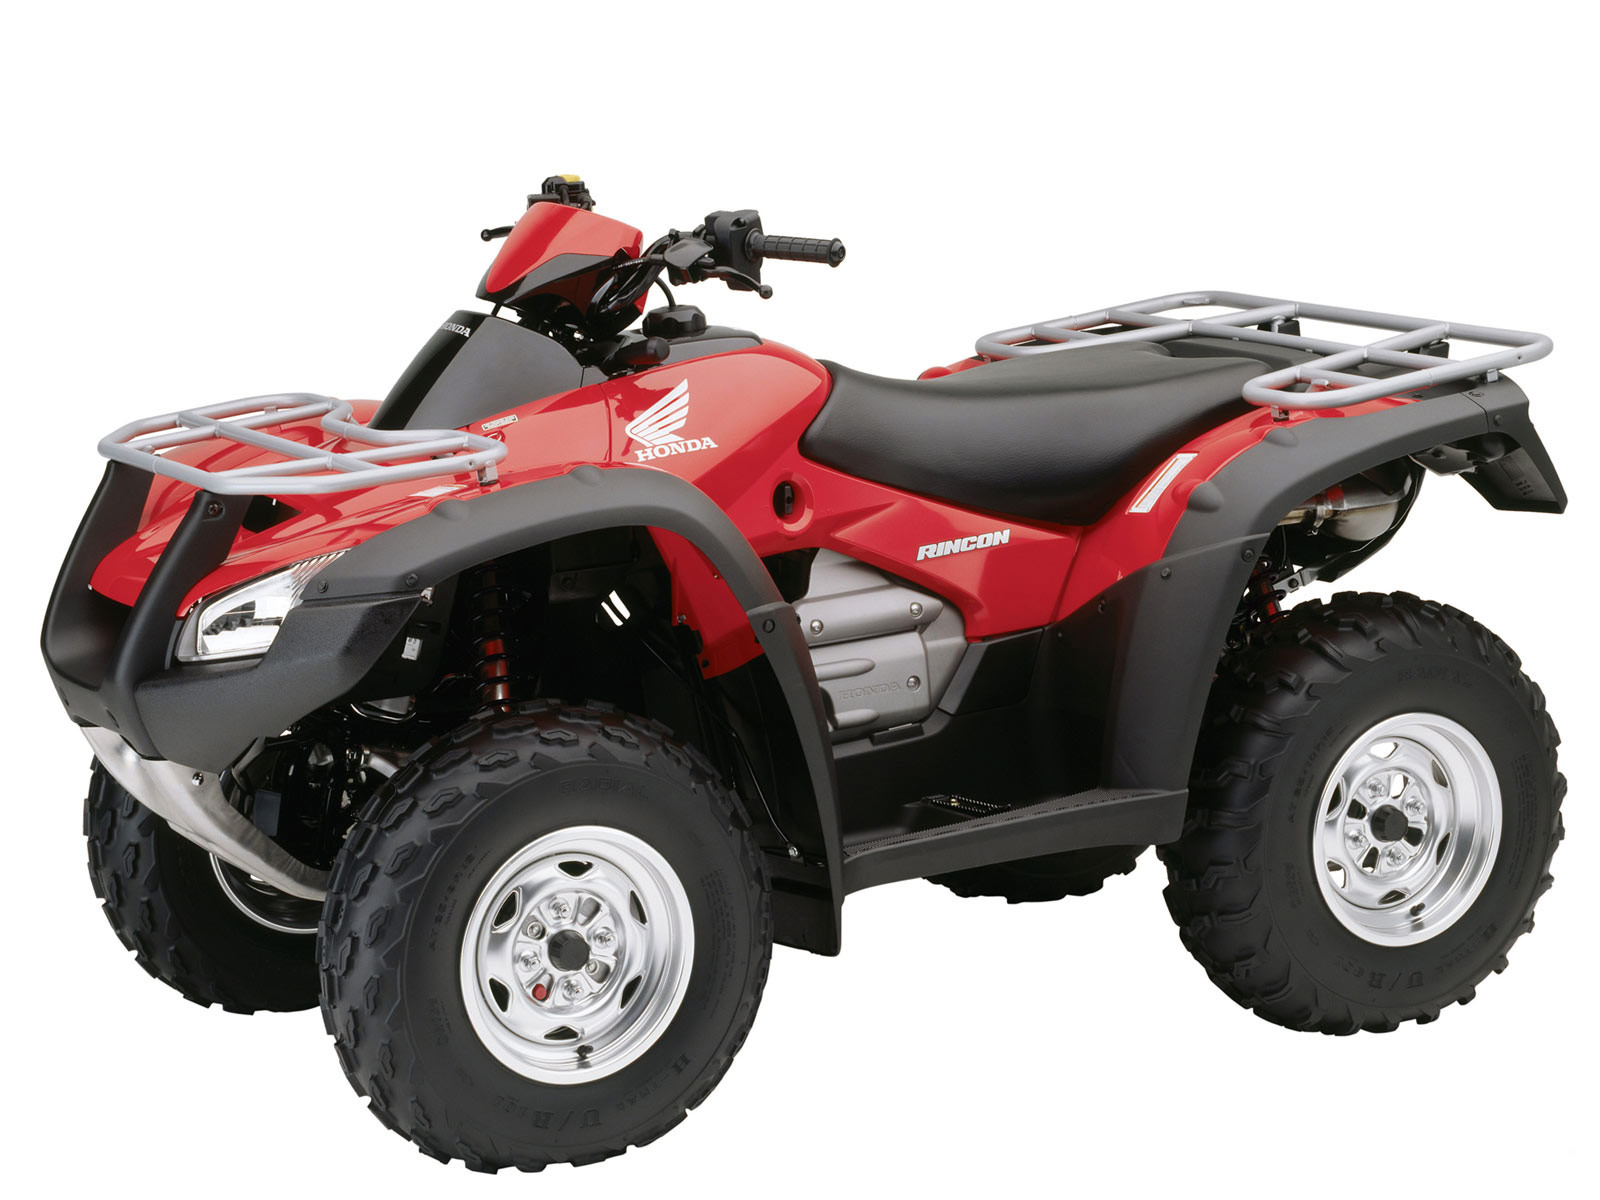 2005 honda fourtrax rincon pictures atv accident lawyers. Black Bedroom Furniture Sets. Home Design Ideas